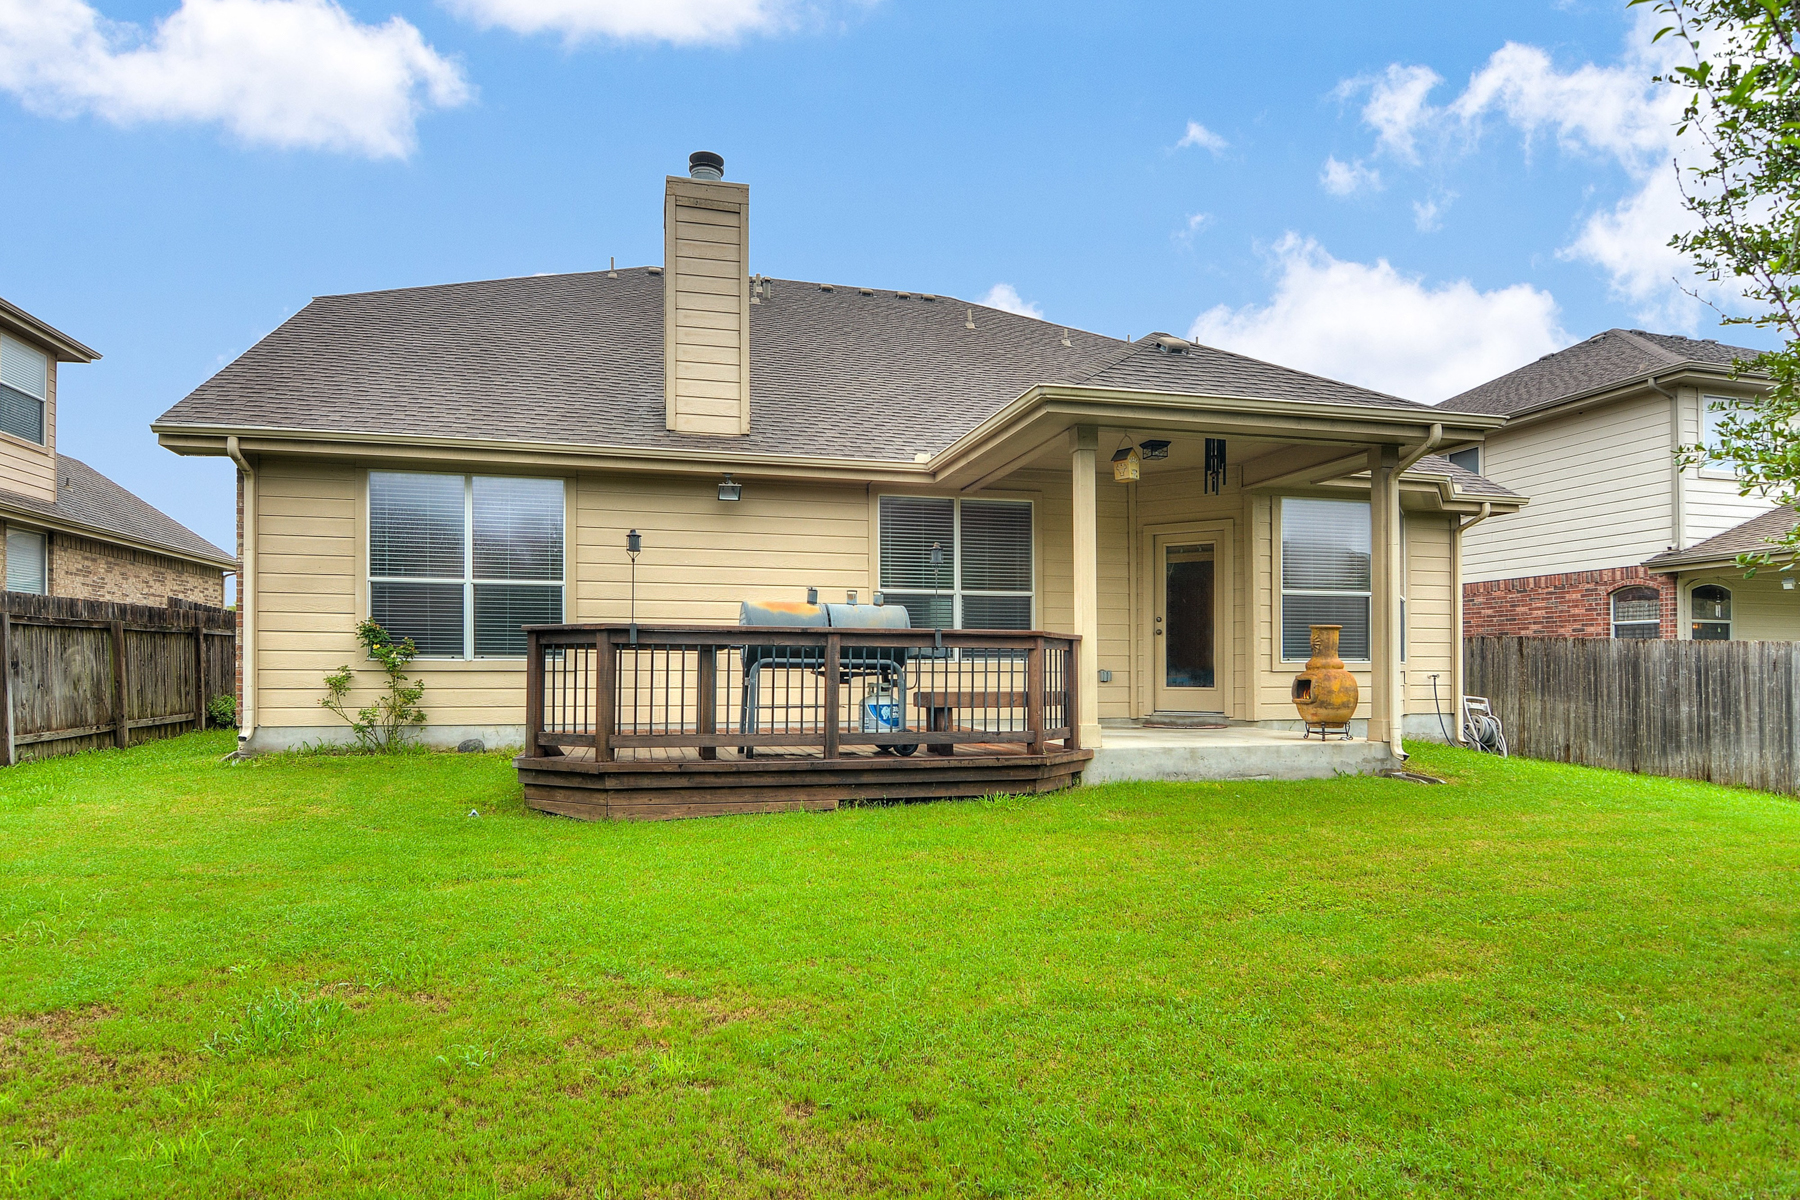 Additional photo for property listing at Spacious Home in Belmont Park 603 American Flag Schertz, Texas 78108 Estados Unidos